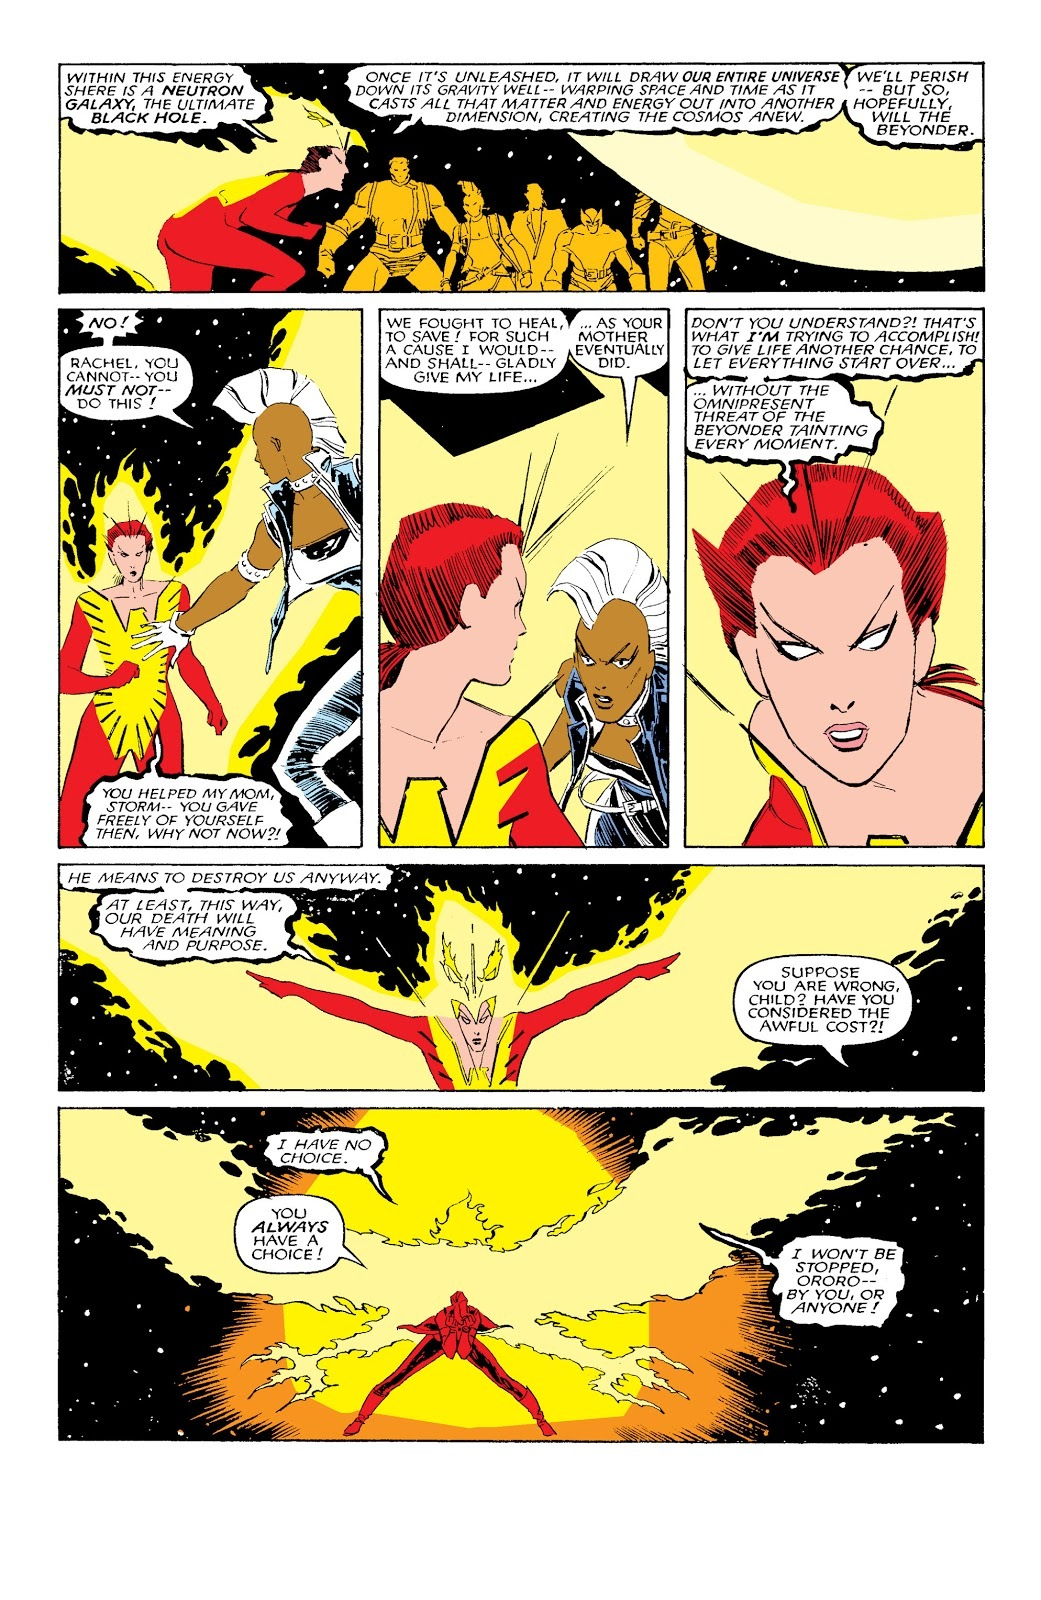 Gathers the life essence of the X-Men and the Starjammers to unleash a Neutron Blackhole in the M'Krann Crystal